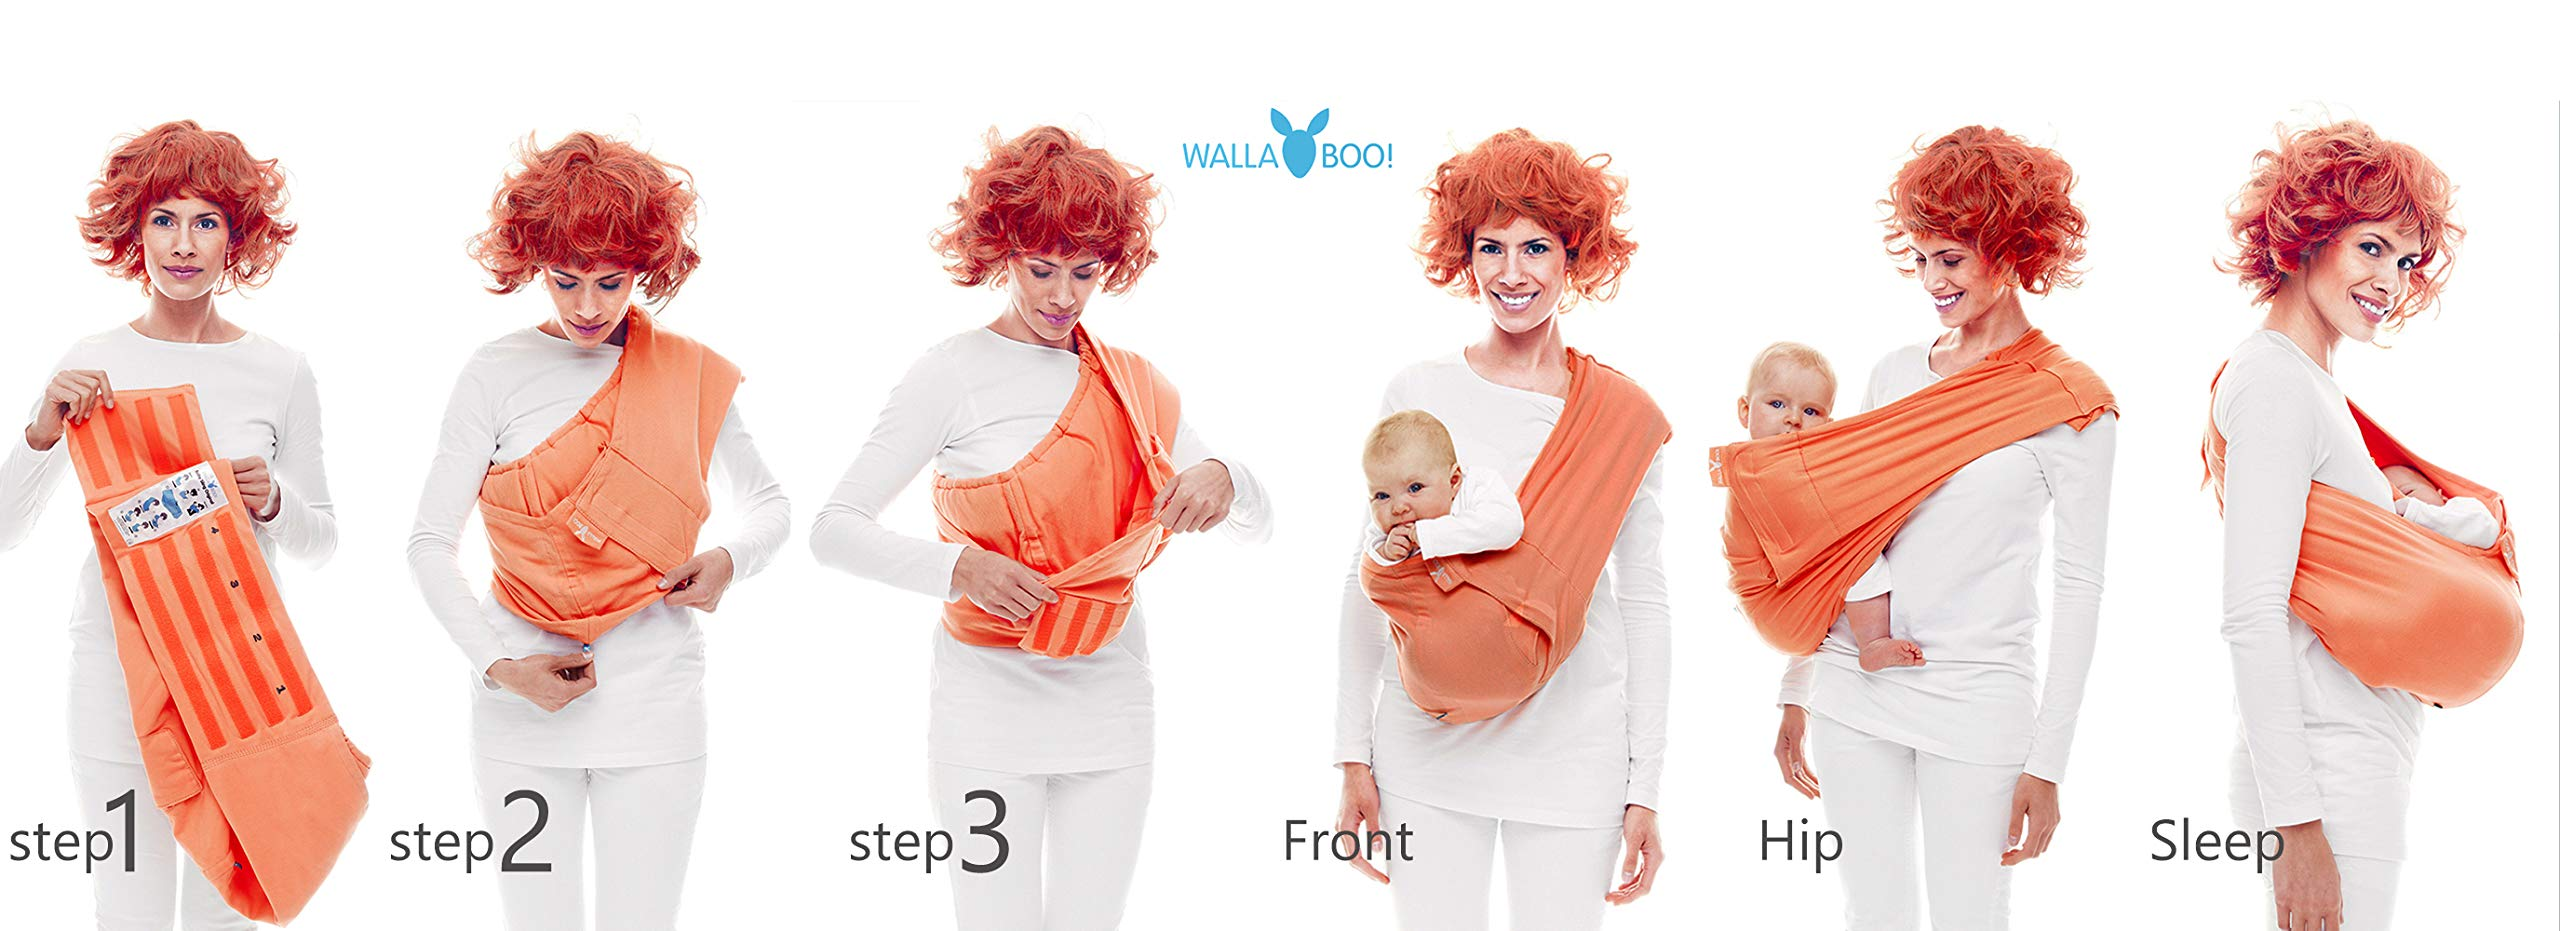 Wallaboo Wrap Sling Carrier Connection, Easy Adjustable, Ergonomic, 3 Carrying Positions, Newborn 8lbs to 33 lbs, Soft Breathable Cotton, 3 Sitting Positions, EU Safety Tested, Color: Green / Grey Wallaboo One size fits all, adjustable in size to fit every mum and dad Can be used for a preemie up to 33 pound child Keeps baby warm in 3 different positions: sleep, sit and active 12